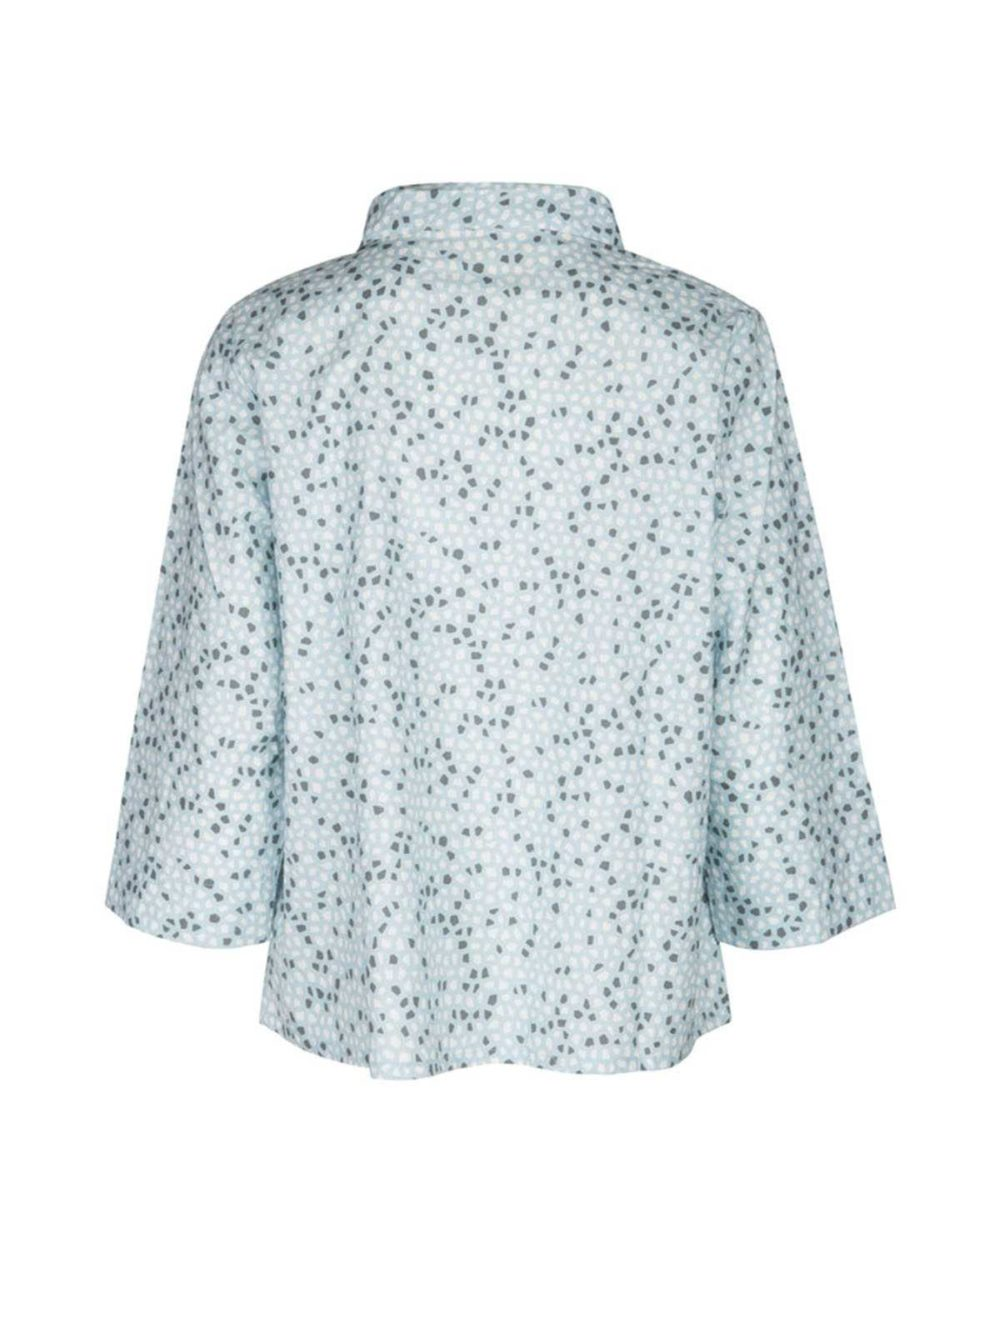 Tytte Jacket Two Danes Katie Kerr Women's Clothing